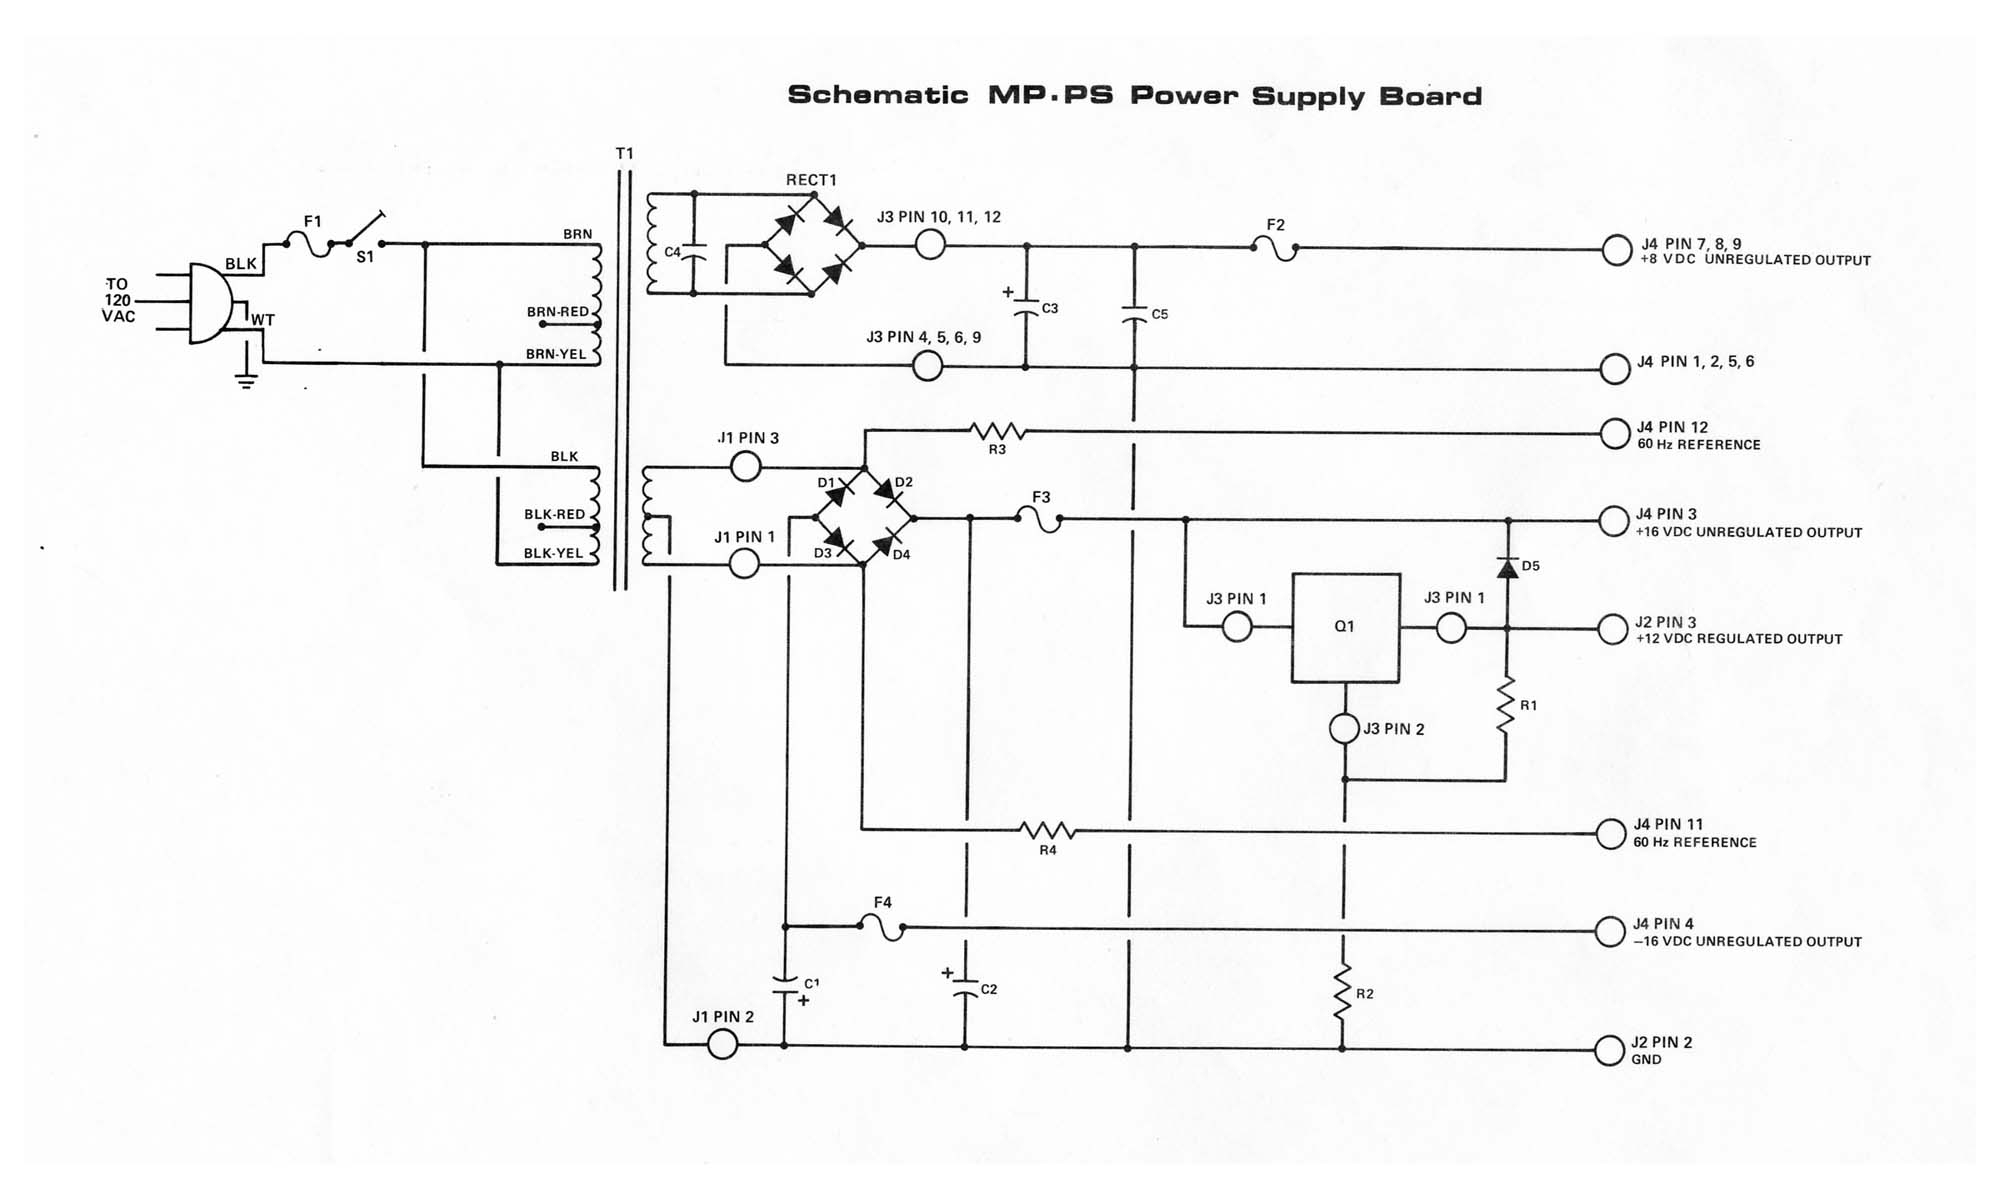 power supply wiring diagram gc 0097  diagram of a power supply power supply wiring diagram pc gc 0097  diagram of a power supply